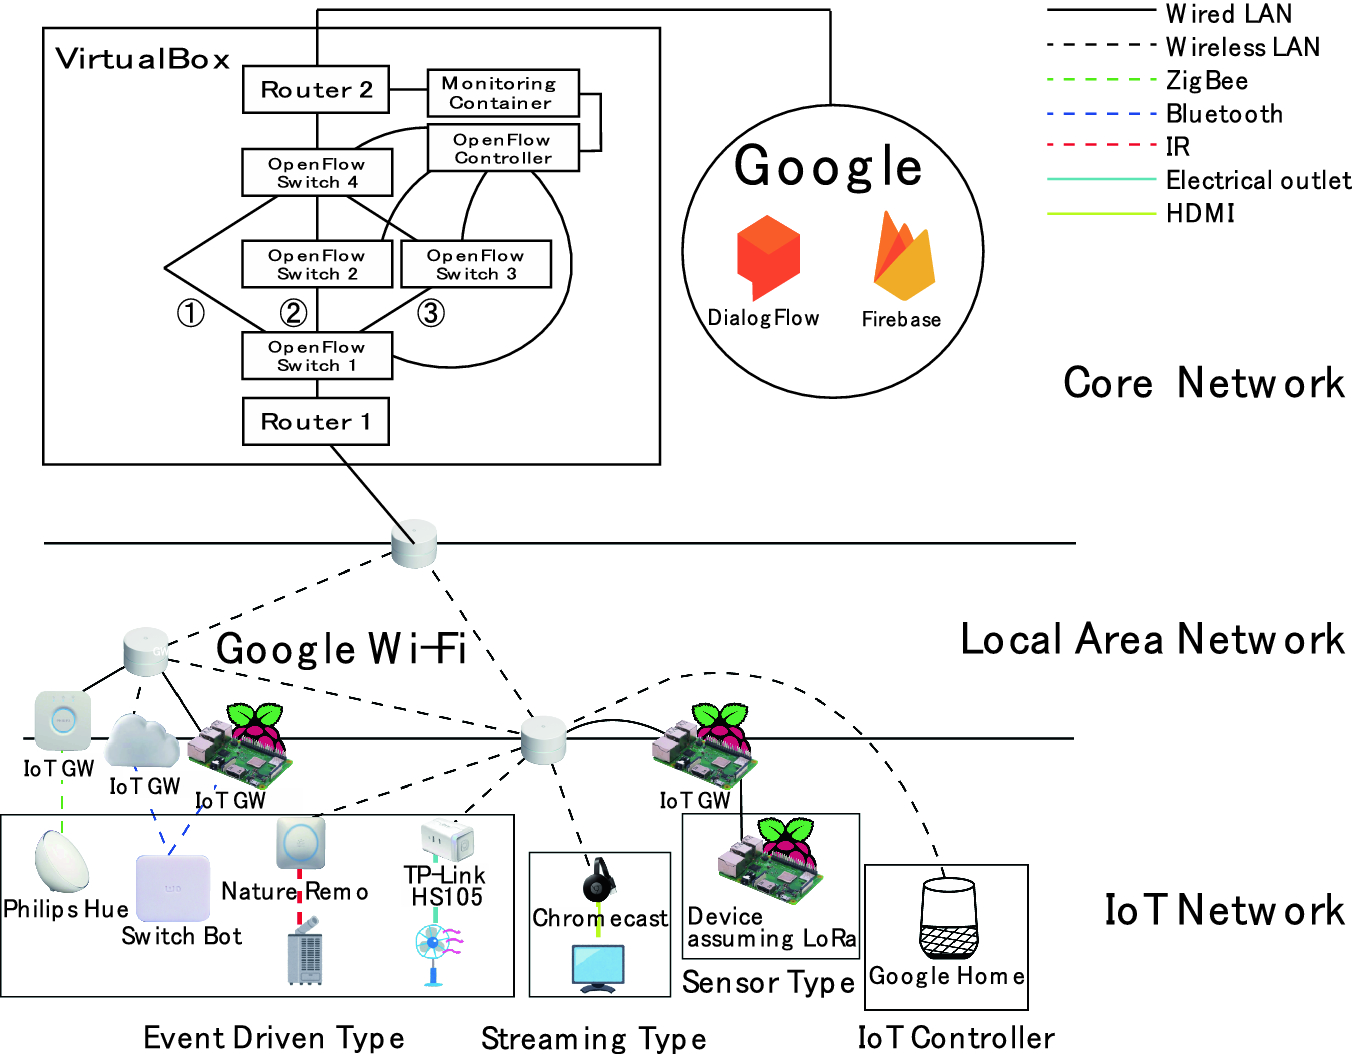 Proposal of QoS Controls by Using OpenFlow for Heterogeneous